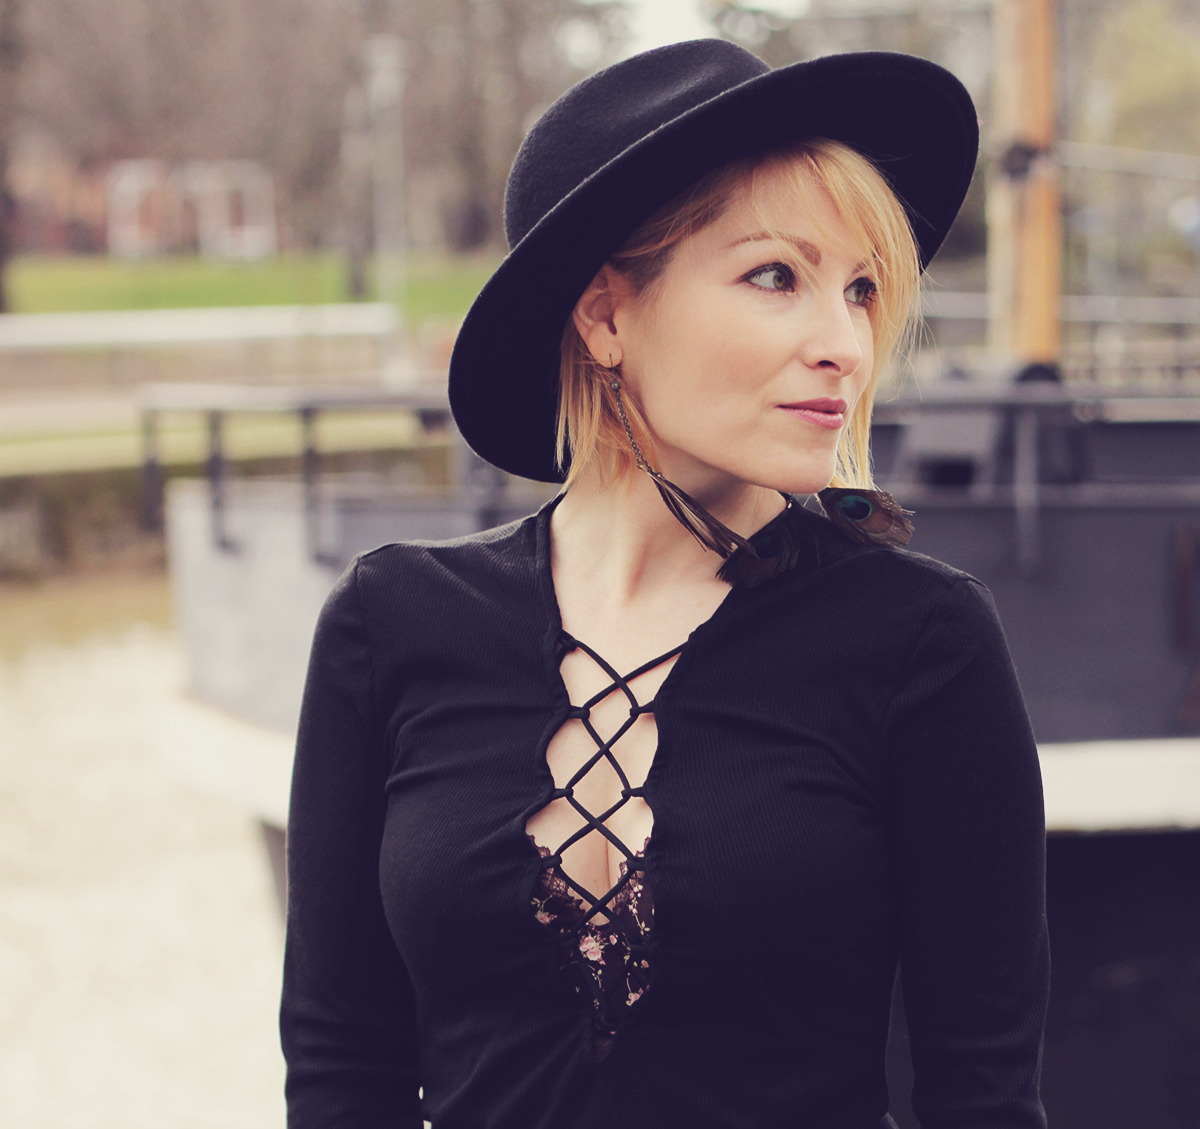 black lace-up top and wool hat